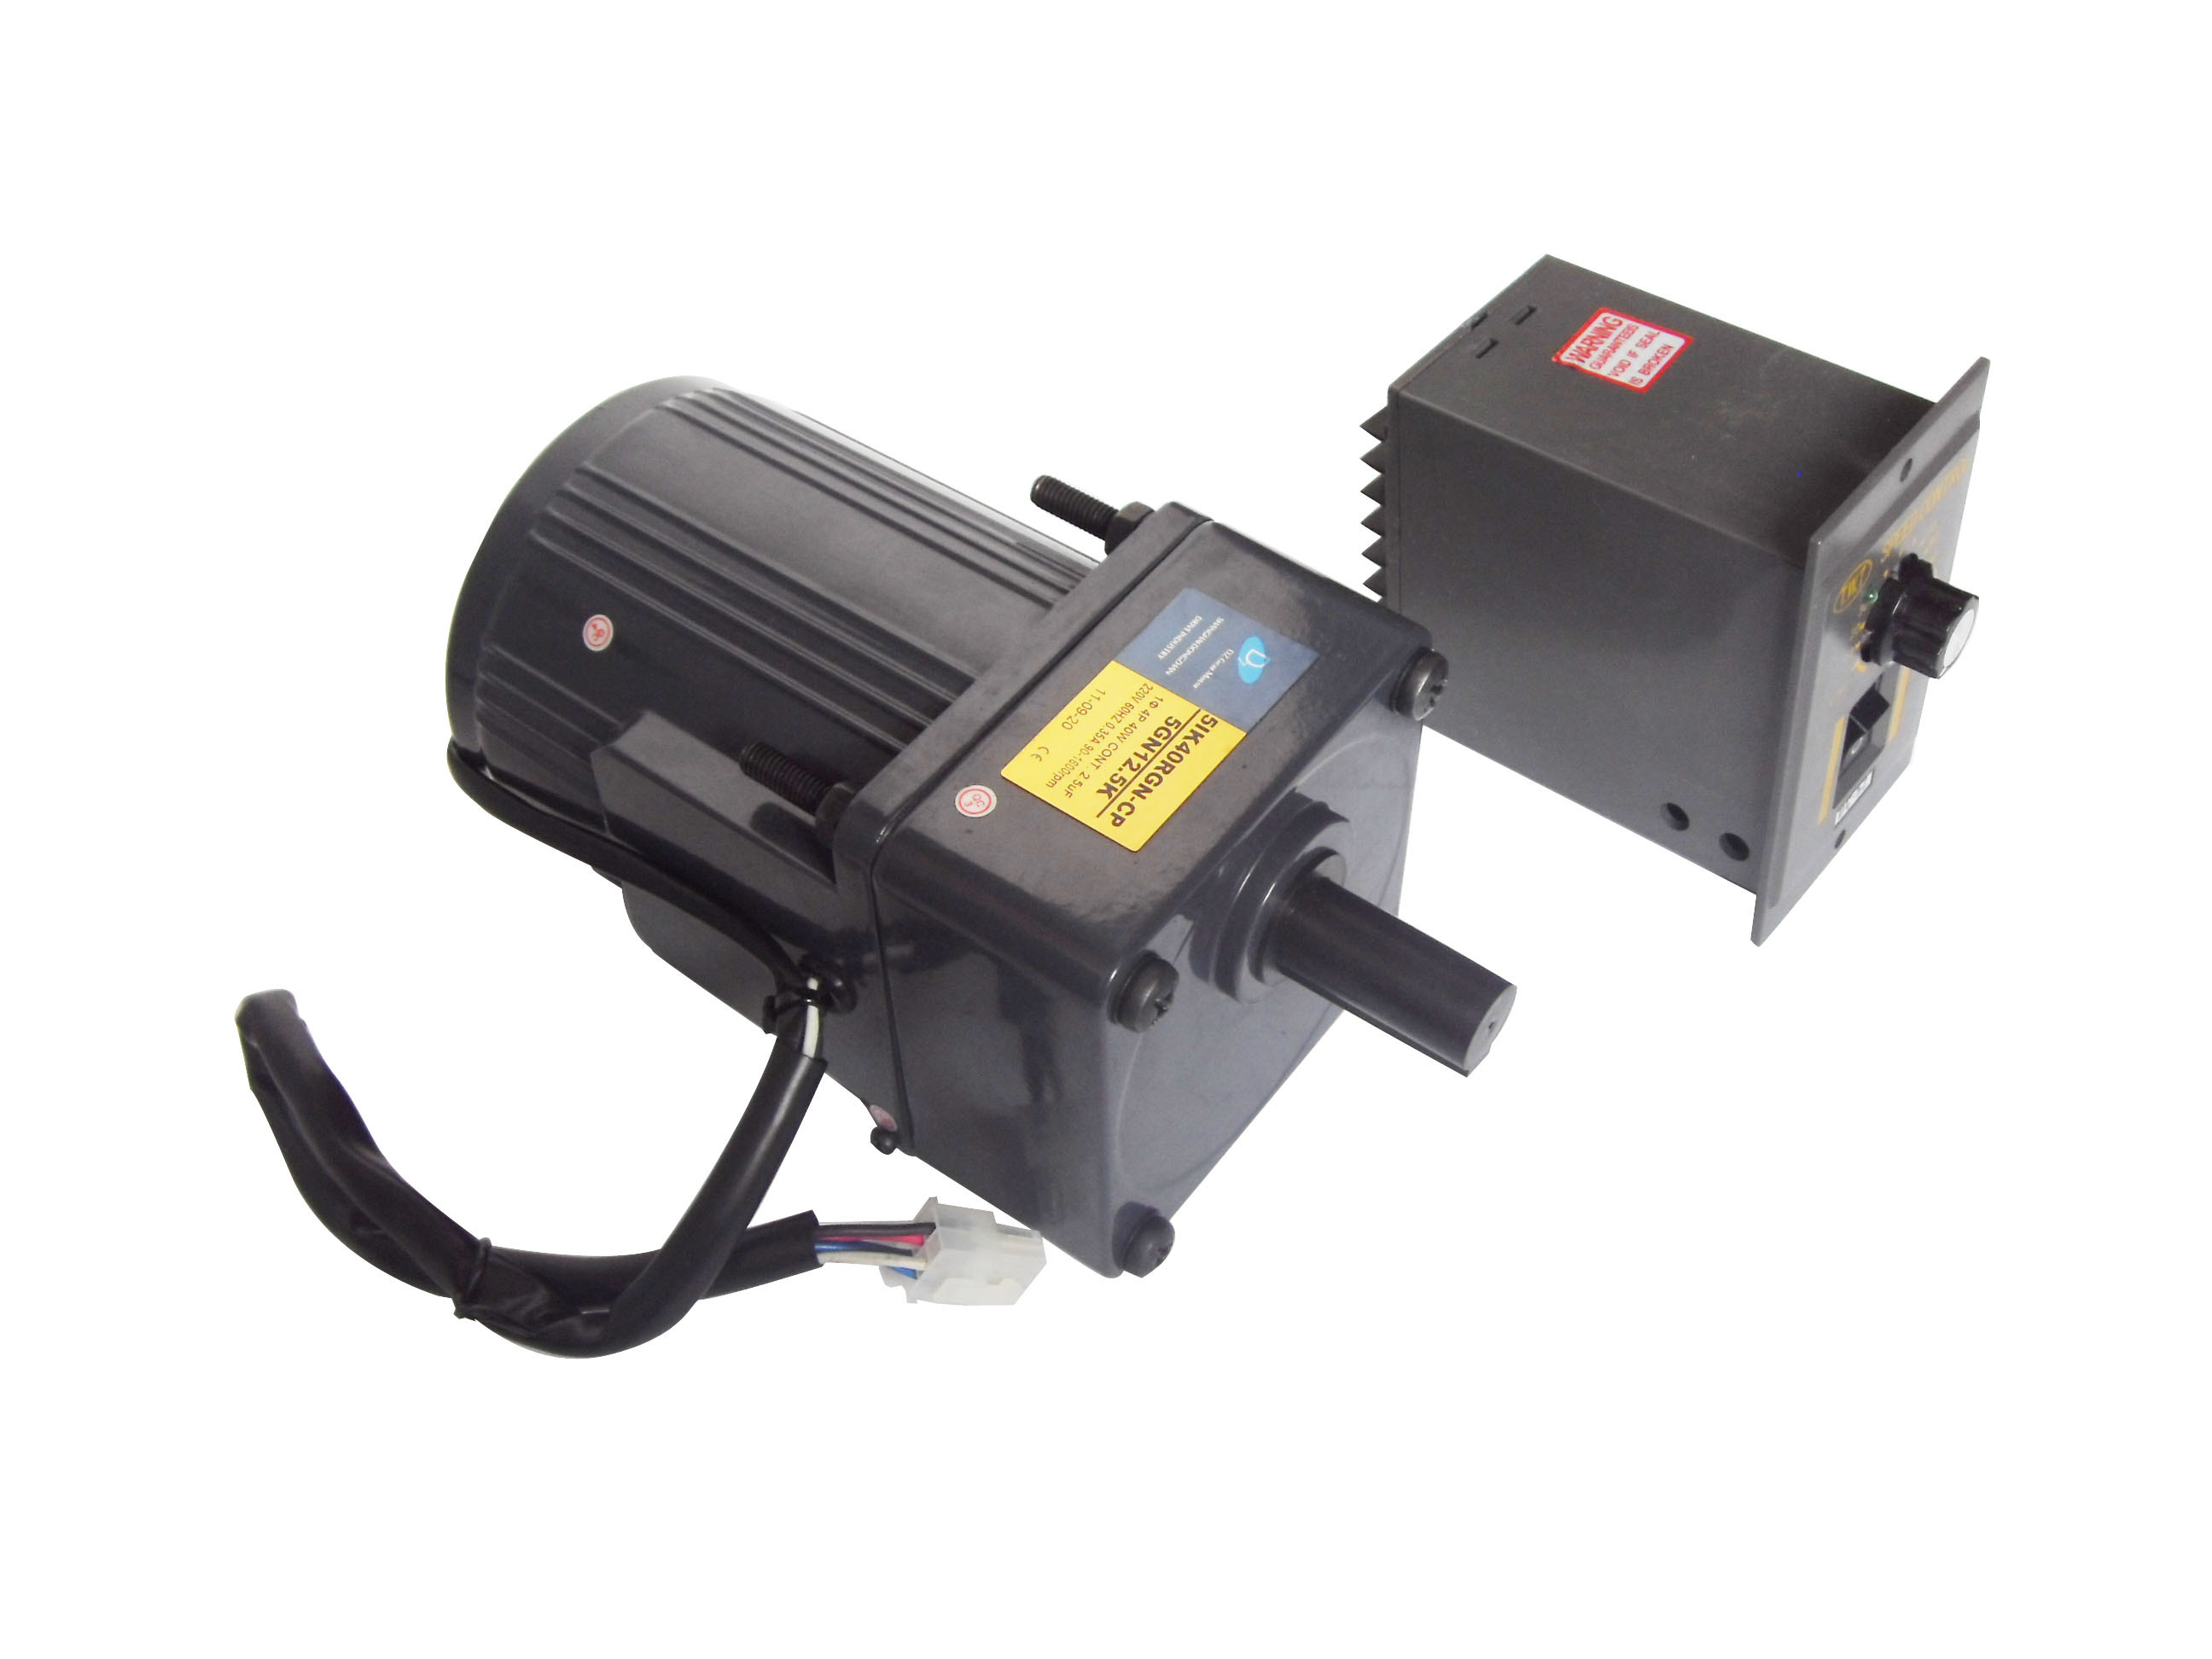 China dc motor worm gearbox dc gear motor supplier for Speed control of induction motor